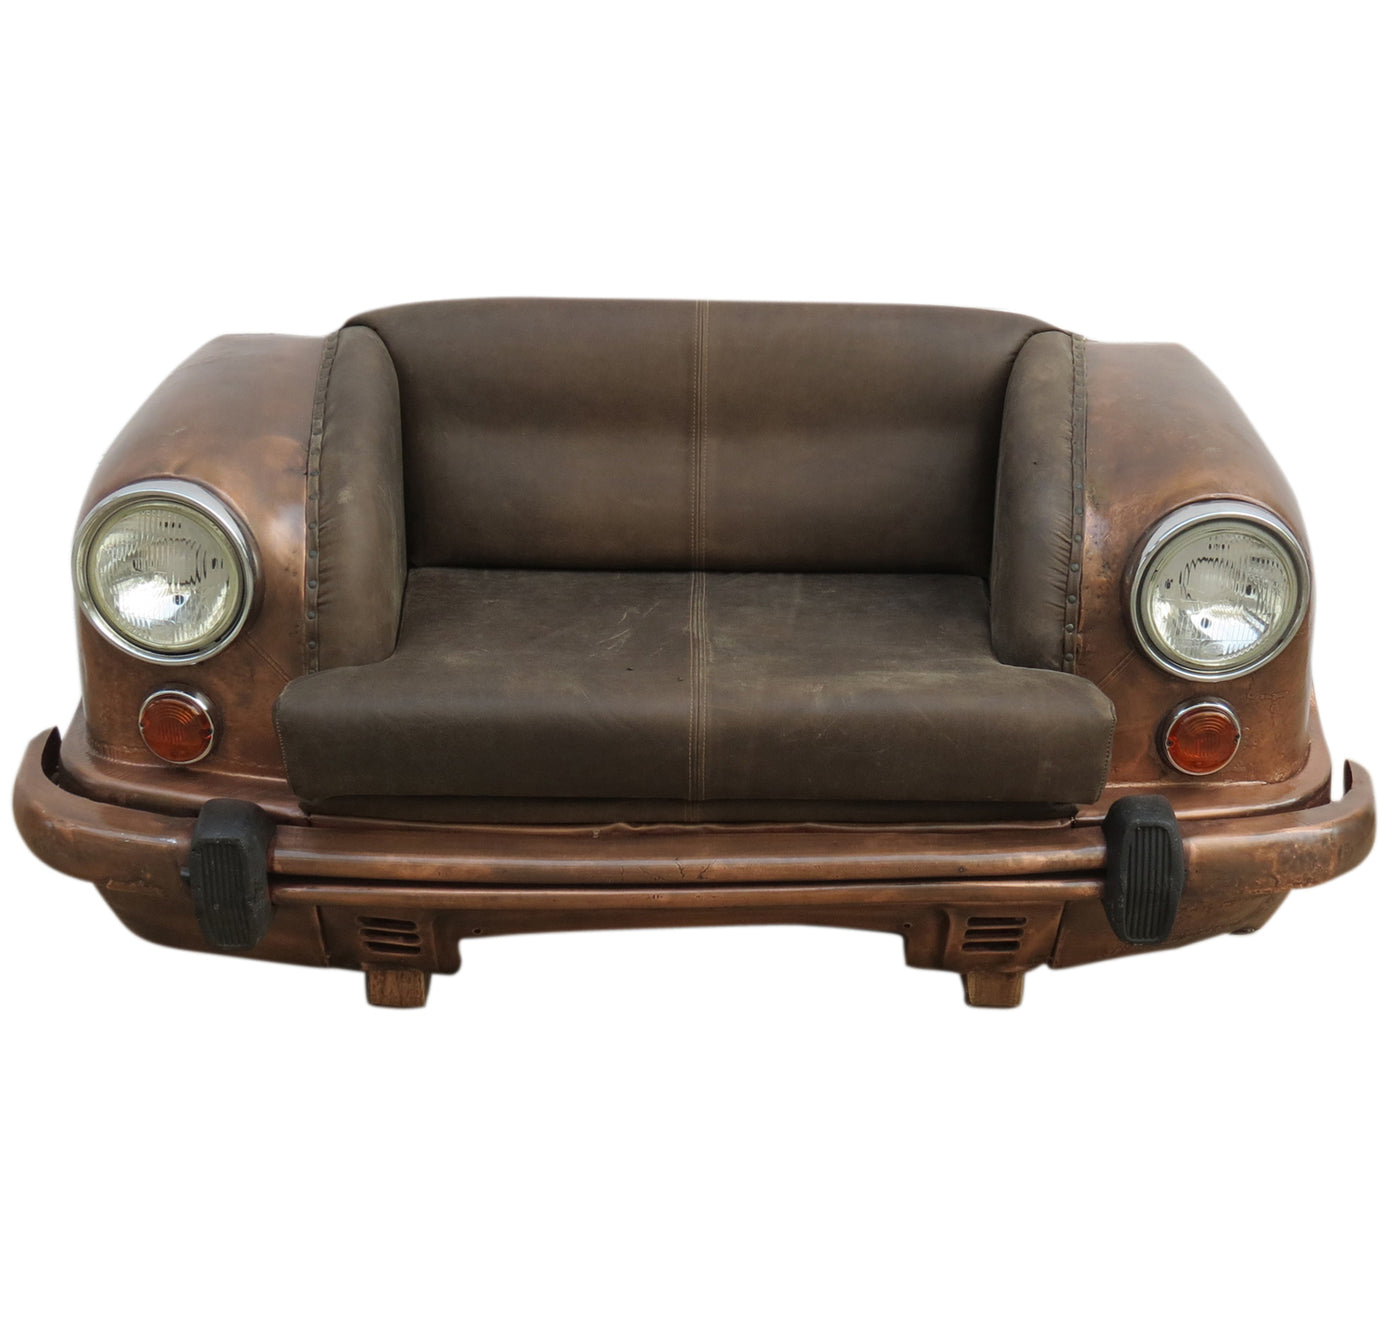 Pleasing Cumbi Antique Copper Car Sofa Leather Gmtry Best Dining Table And Chair Ideas Images Gmtryco